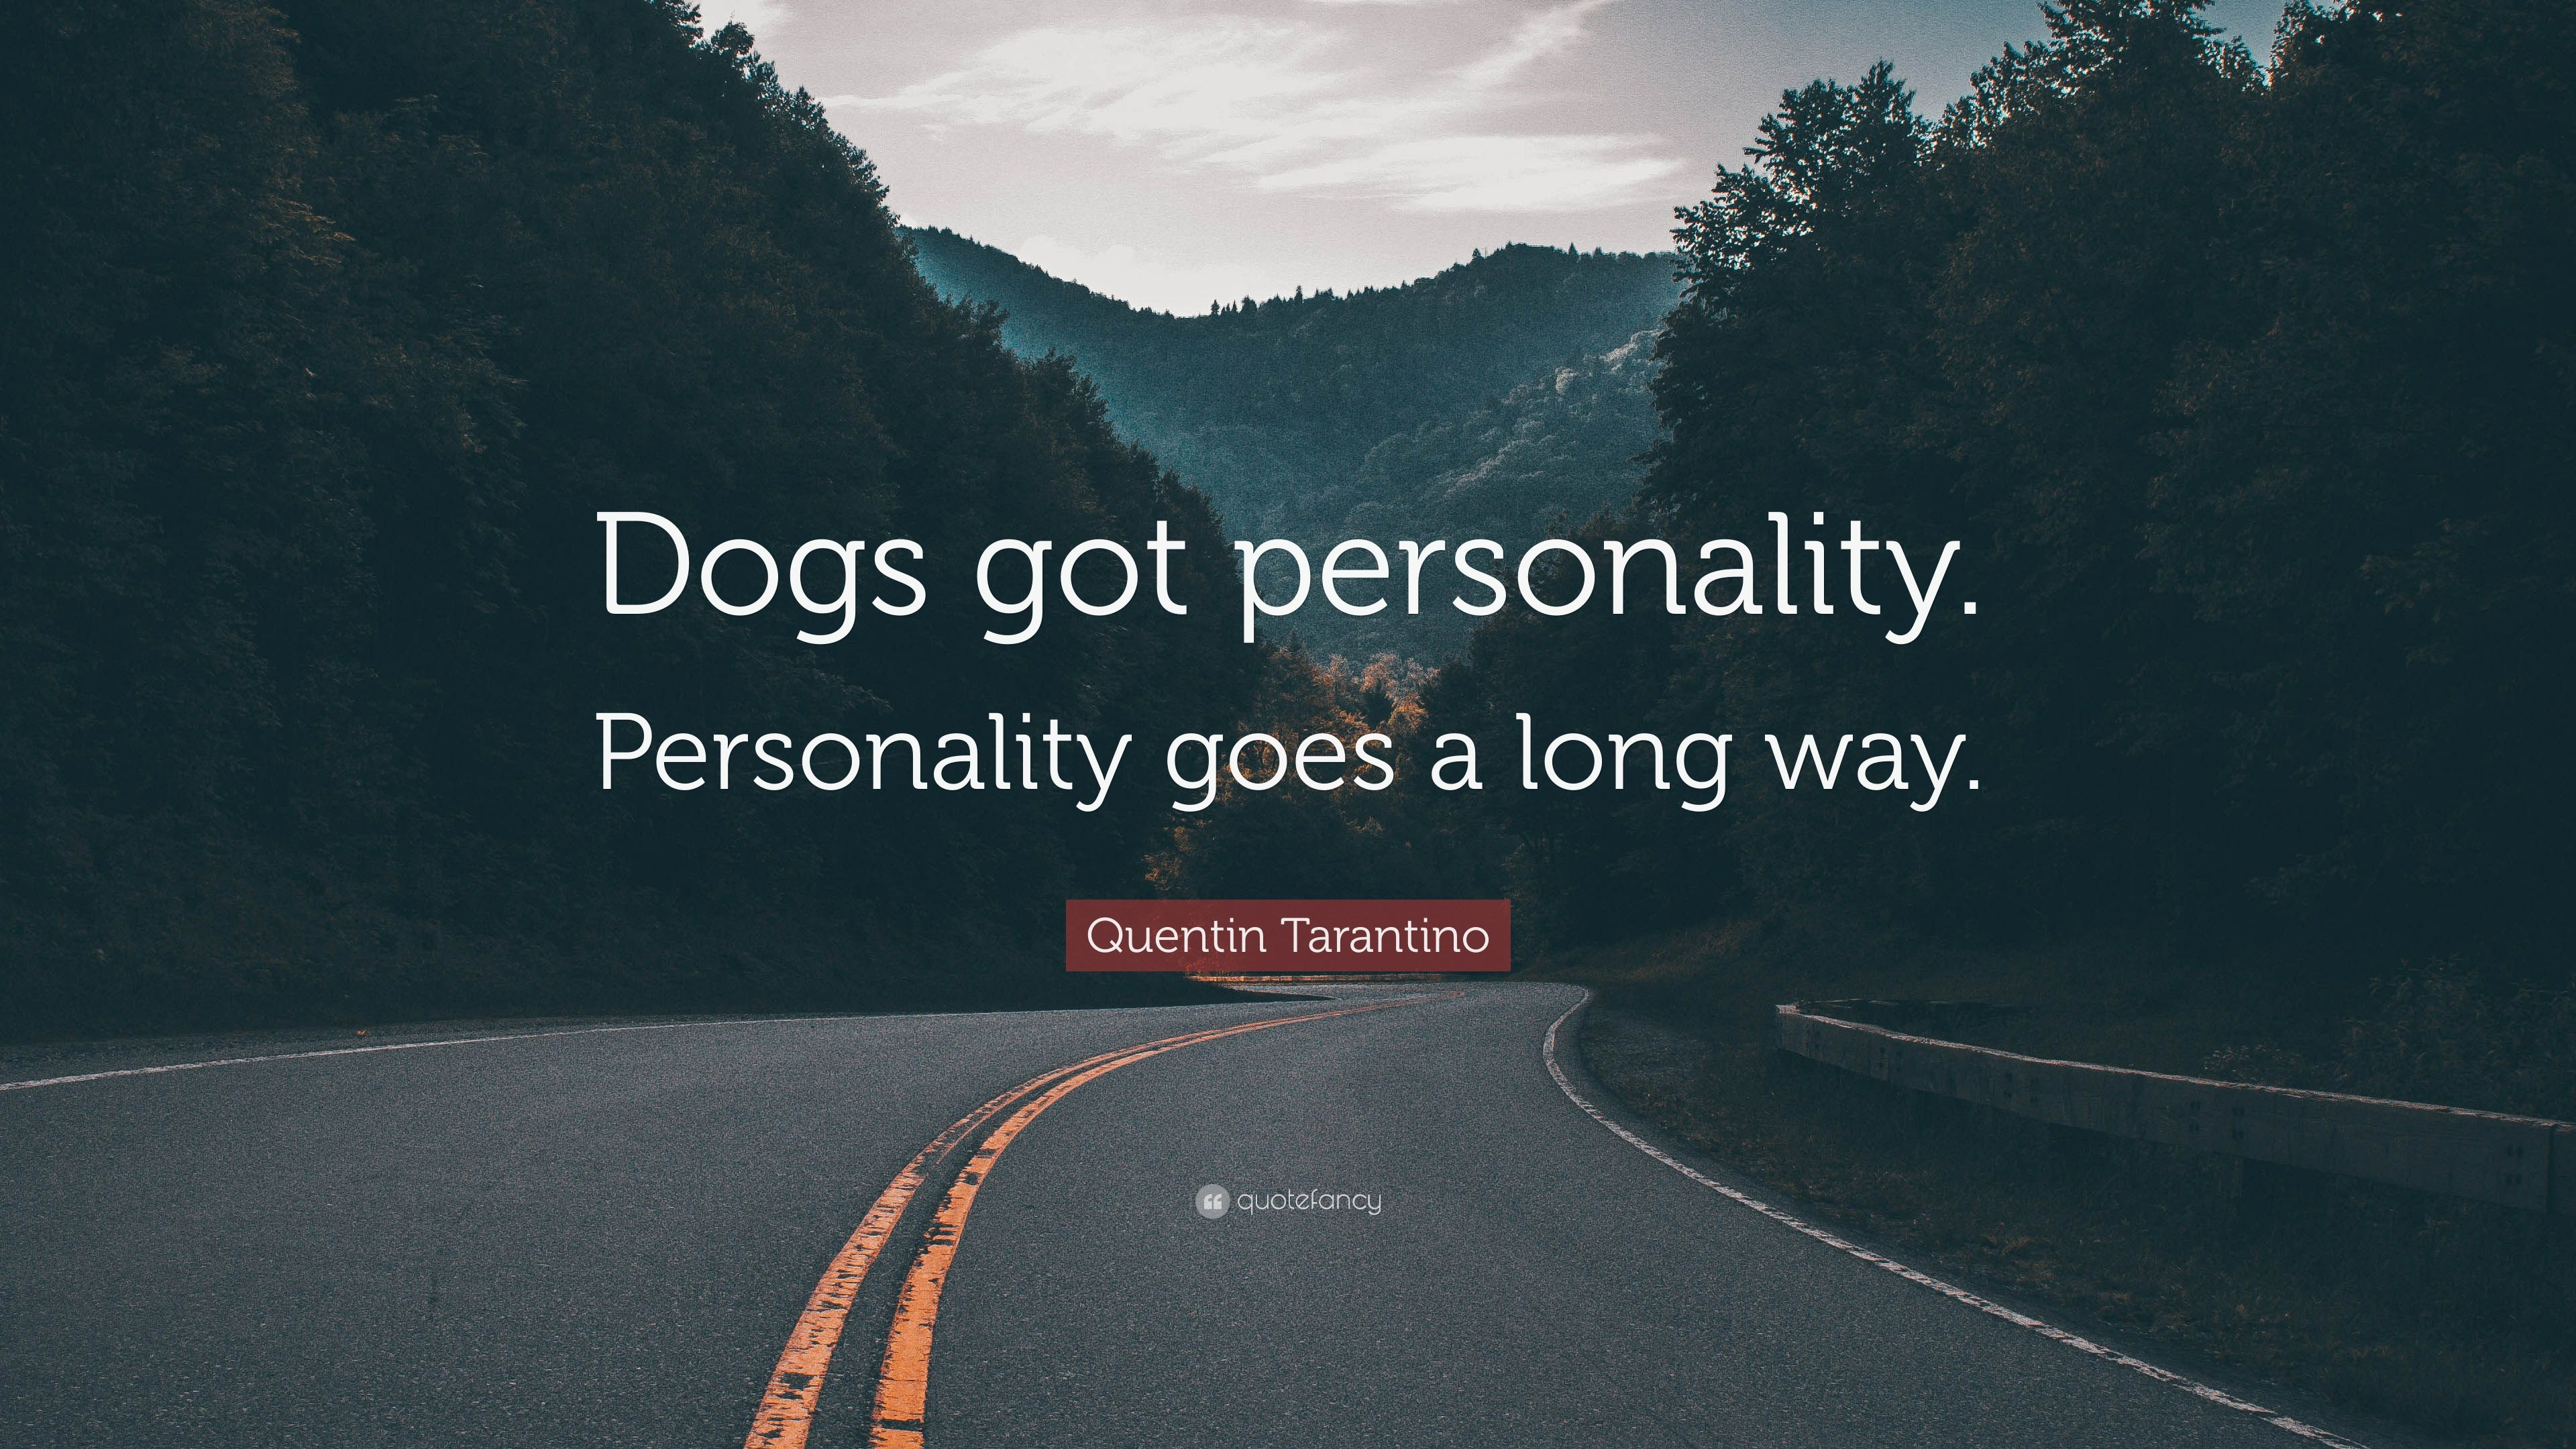 quentin tarantino quote dogs got personality personality goes a long way 12 wallpapers. Black Bedroom Furniture Sets. Home Design Ideas